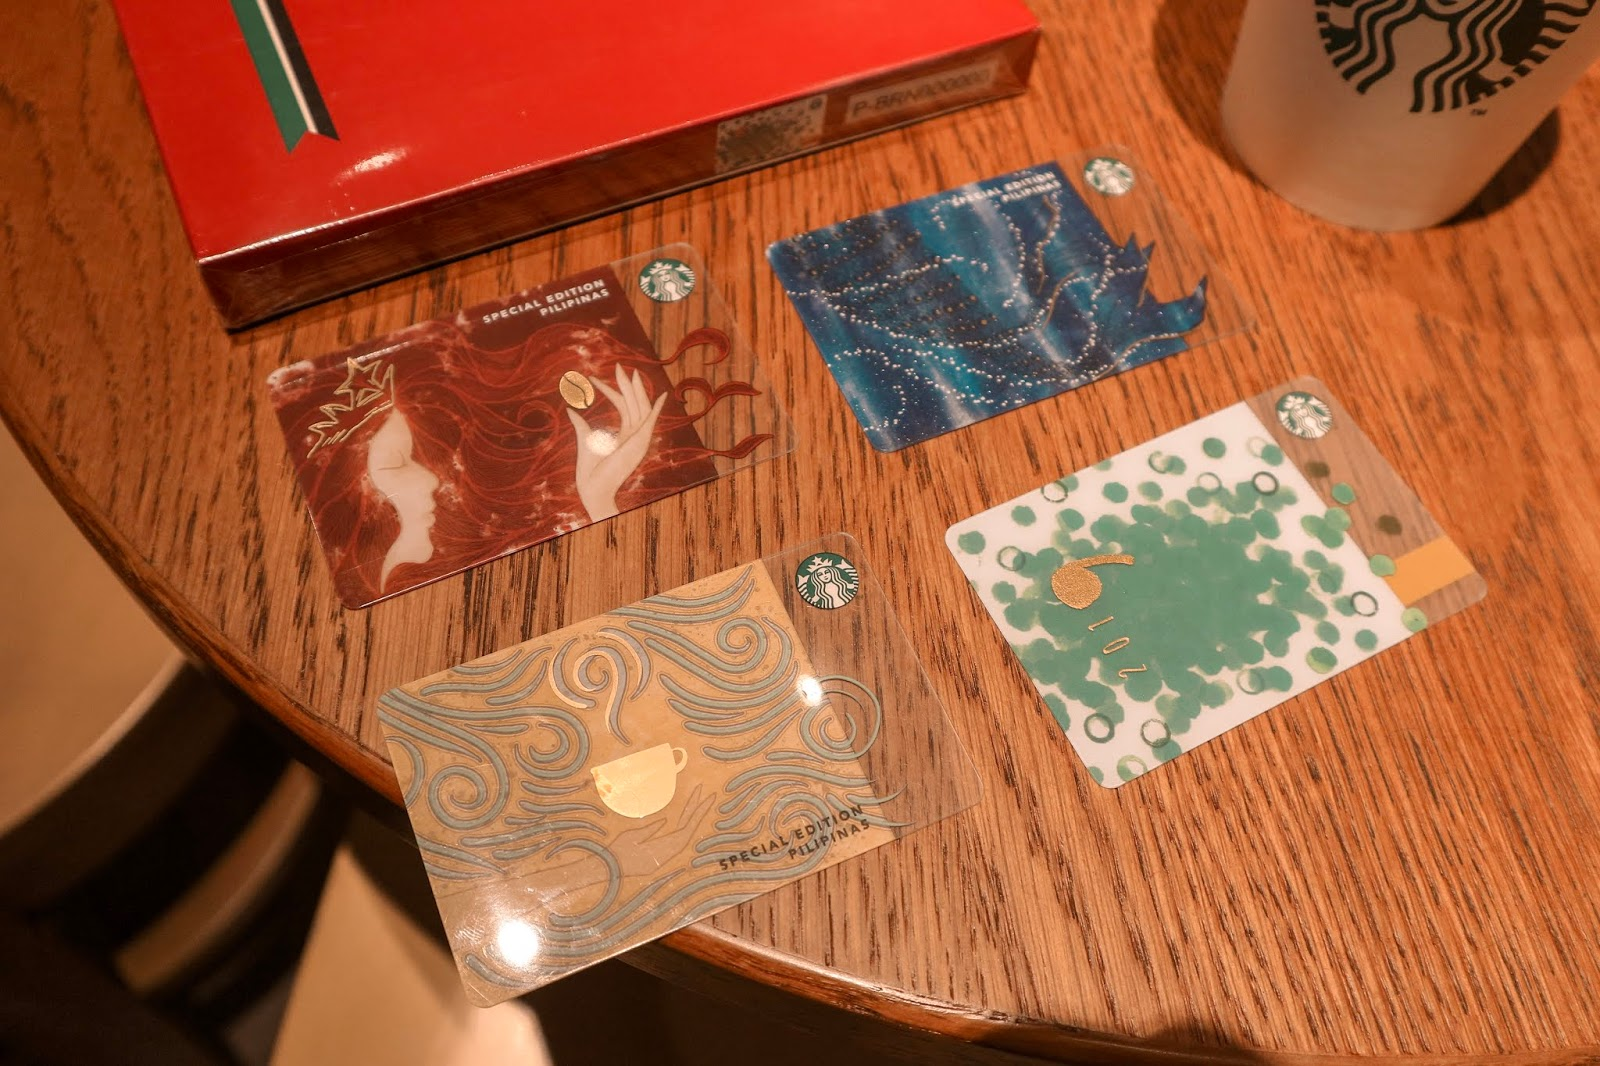 Starbucks 2019 Cards